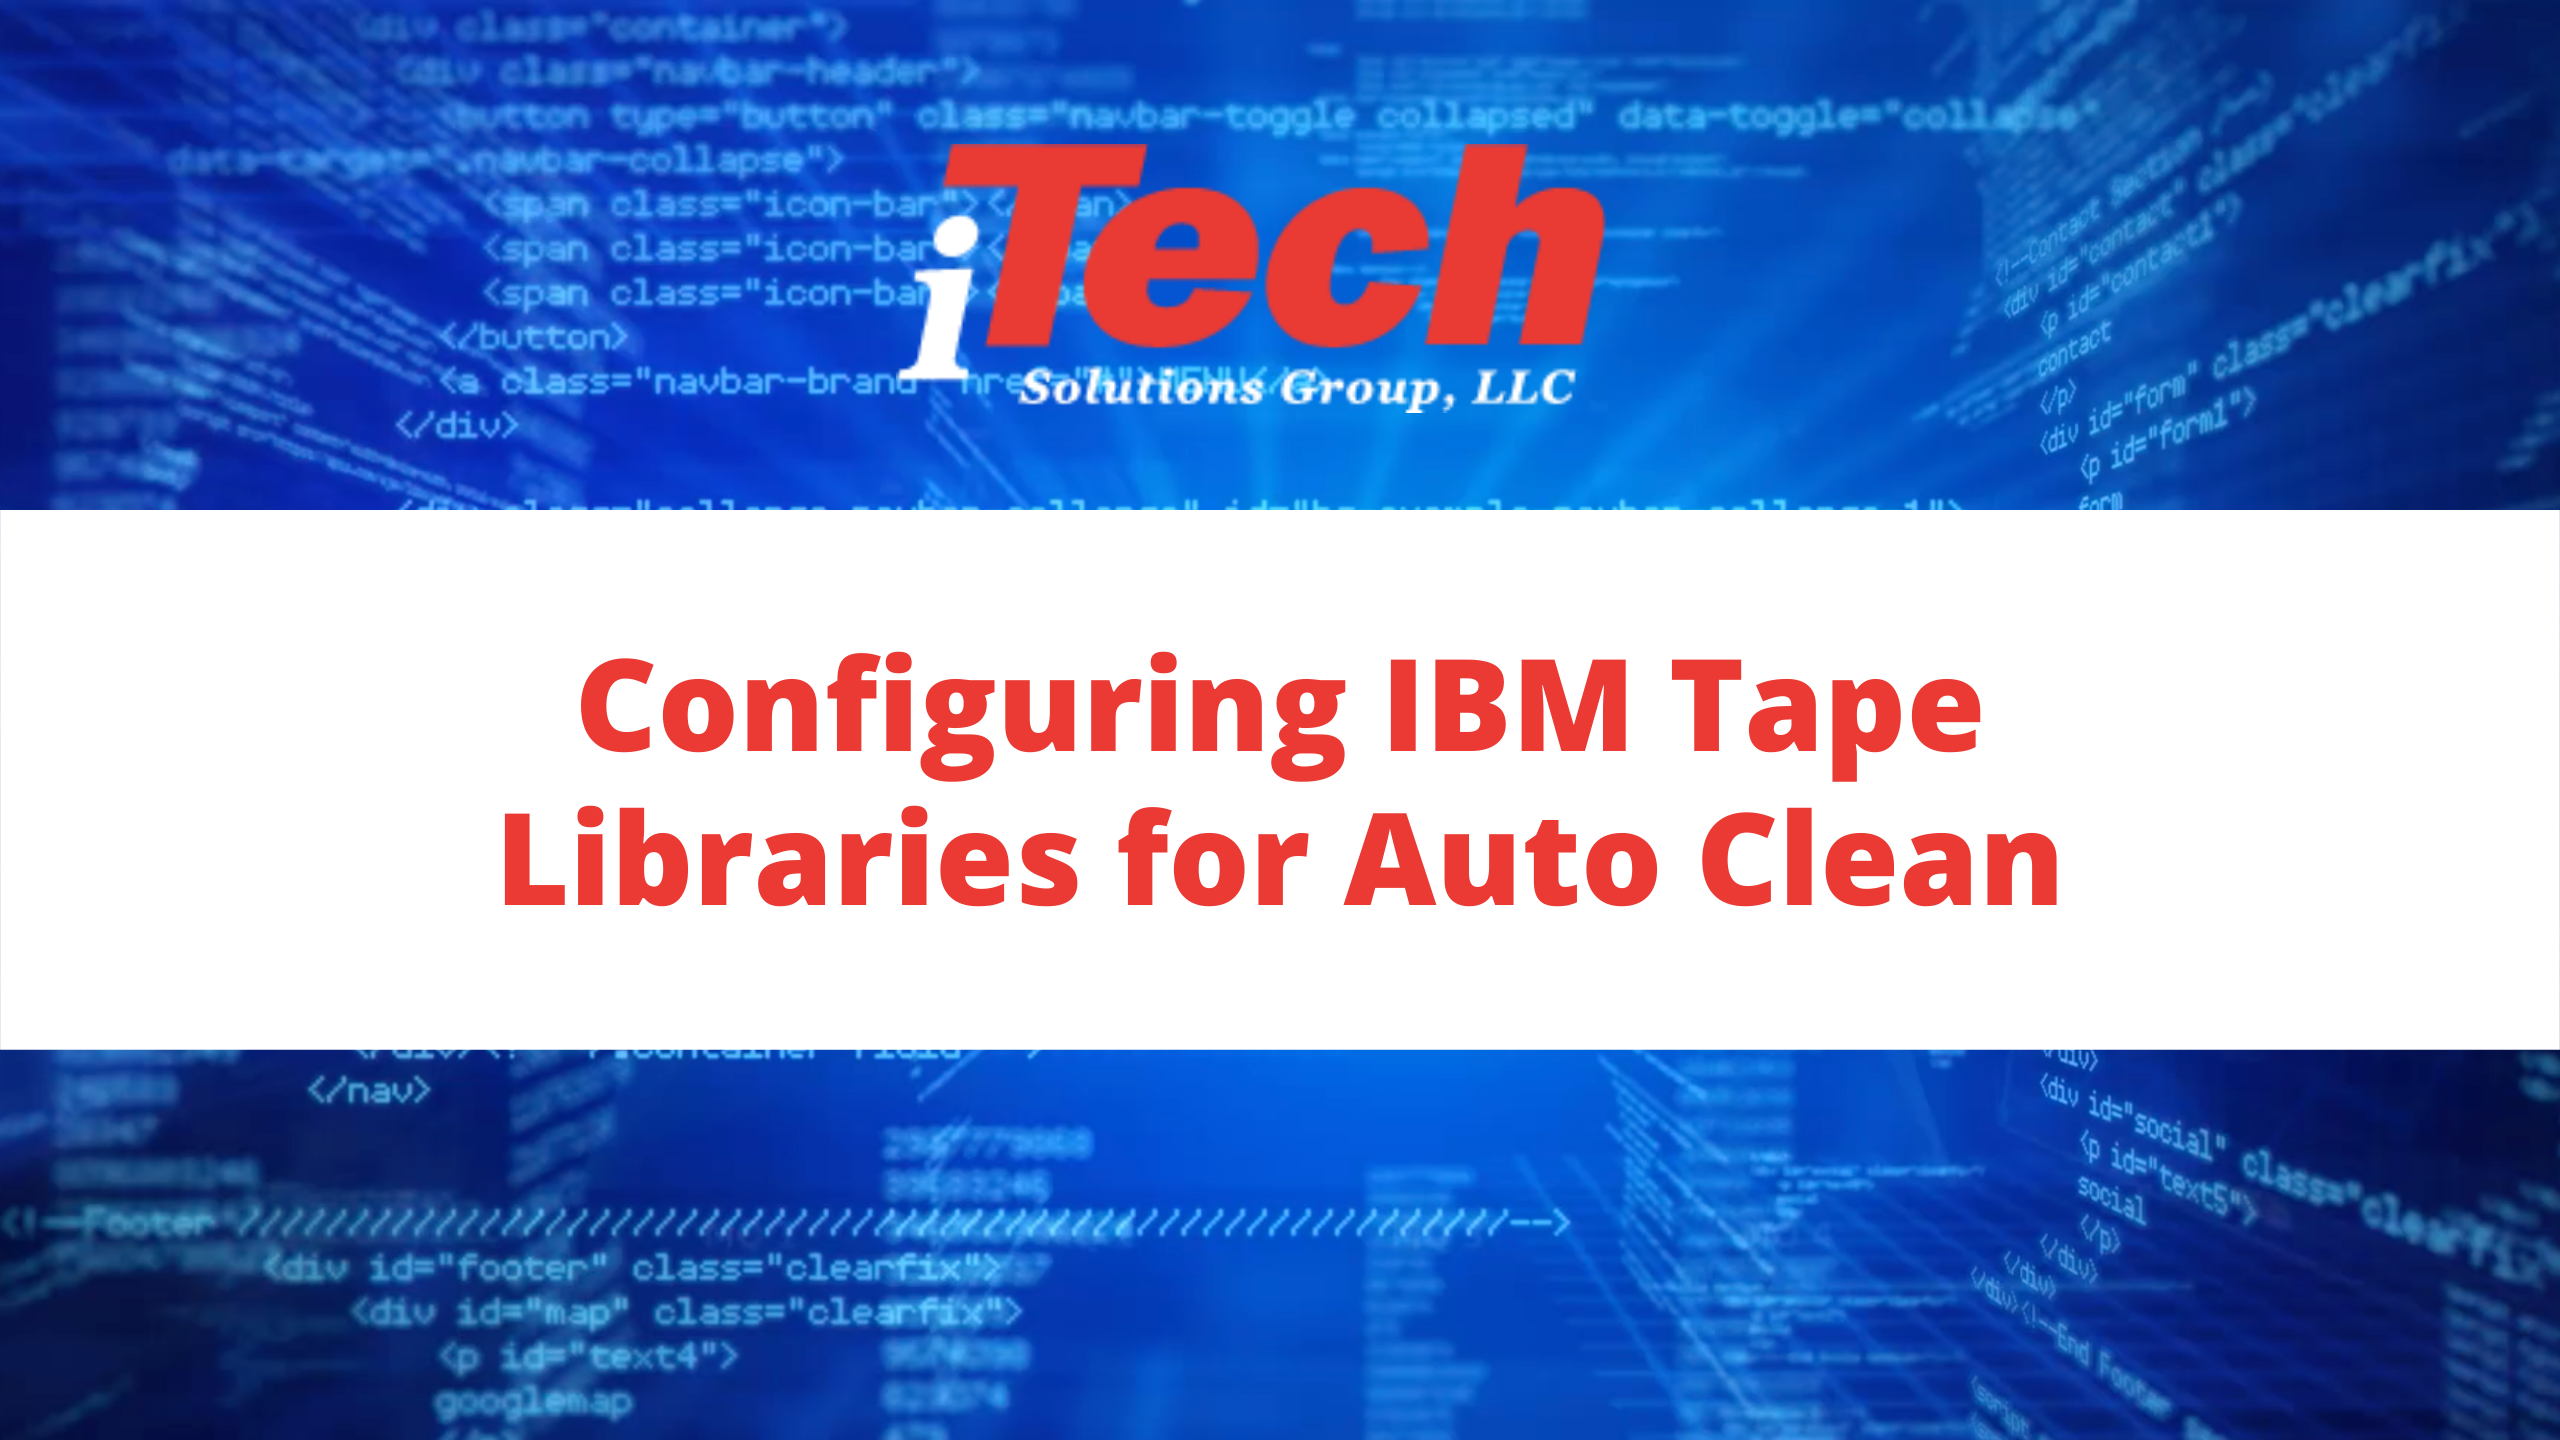 Configuring IBM Tape Libraries for Auto Clean